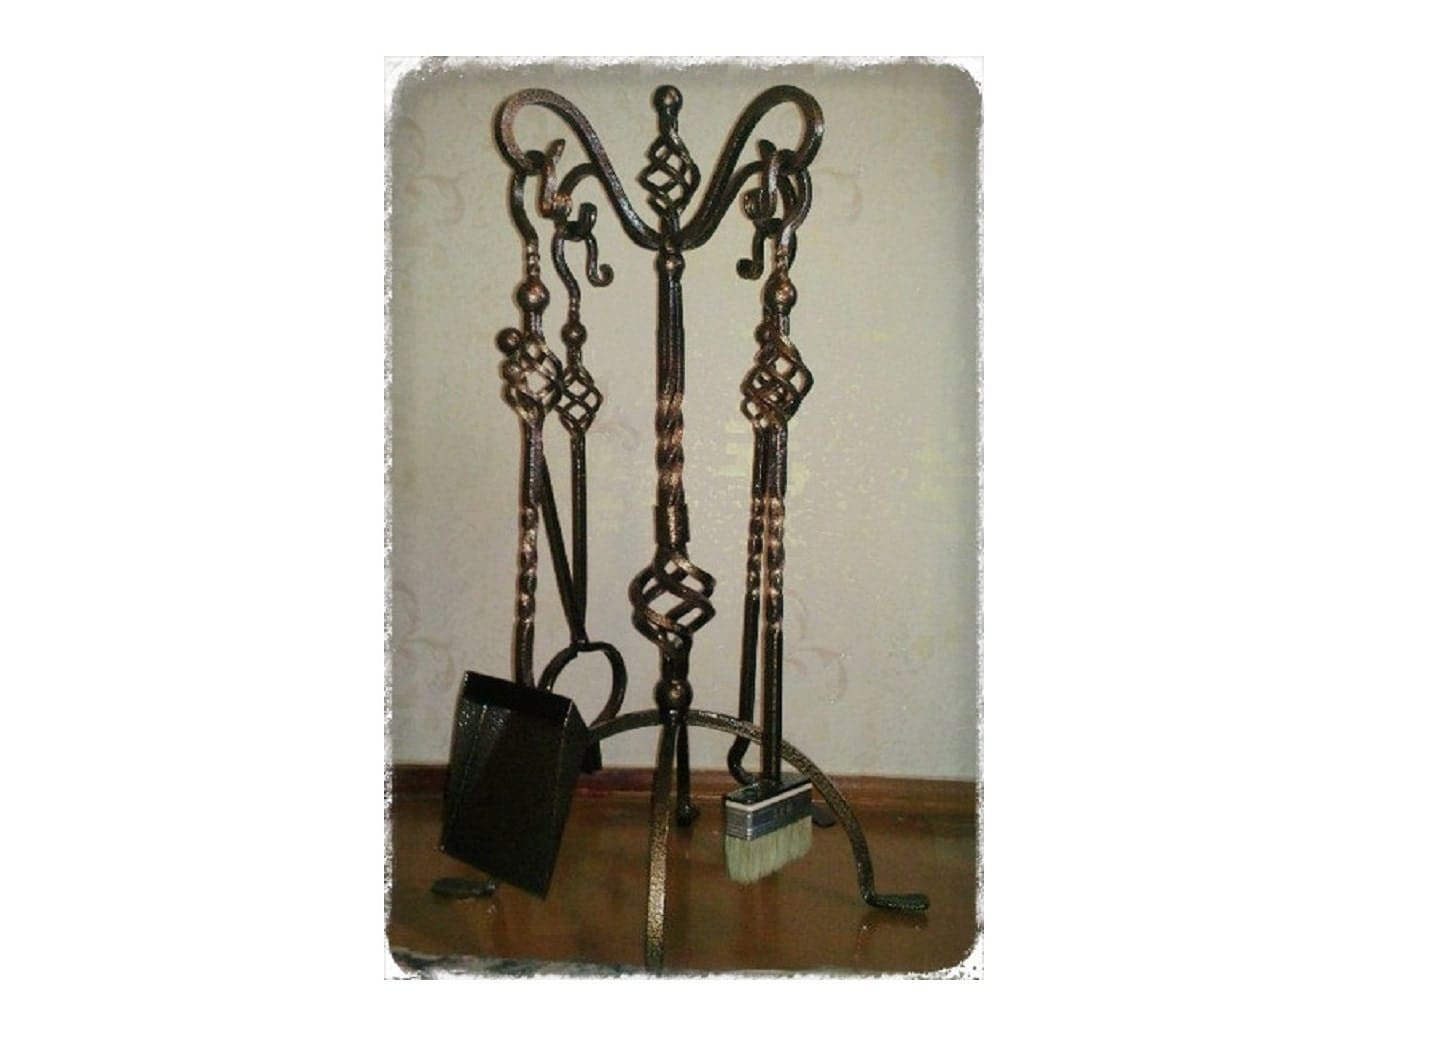 Hand Forged Wrought Iron Fireplace Tool Set Fireplace Tool